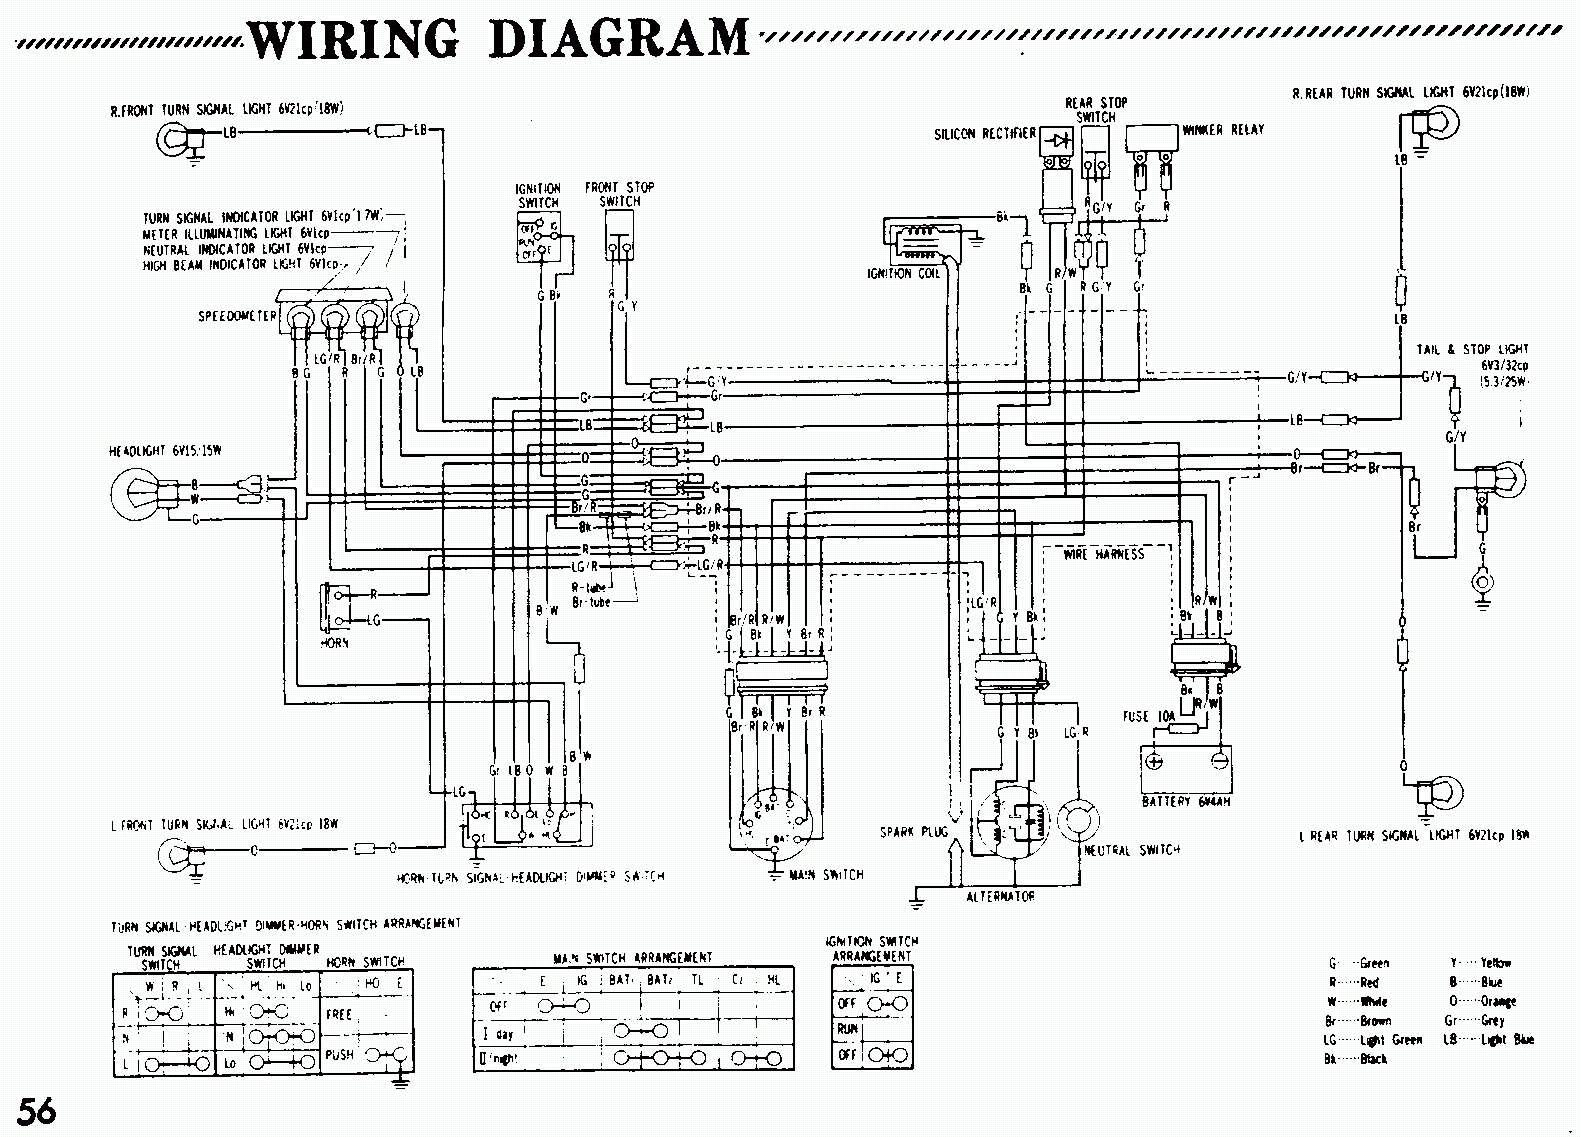 honda ct70 1976 wiring diagram honda xl70 wiring diagram honda cb750 wiring diagram \u2022 free wiring honda xl80s wiring diagram at eliteediting.co